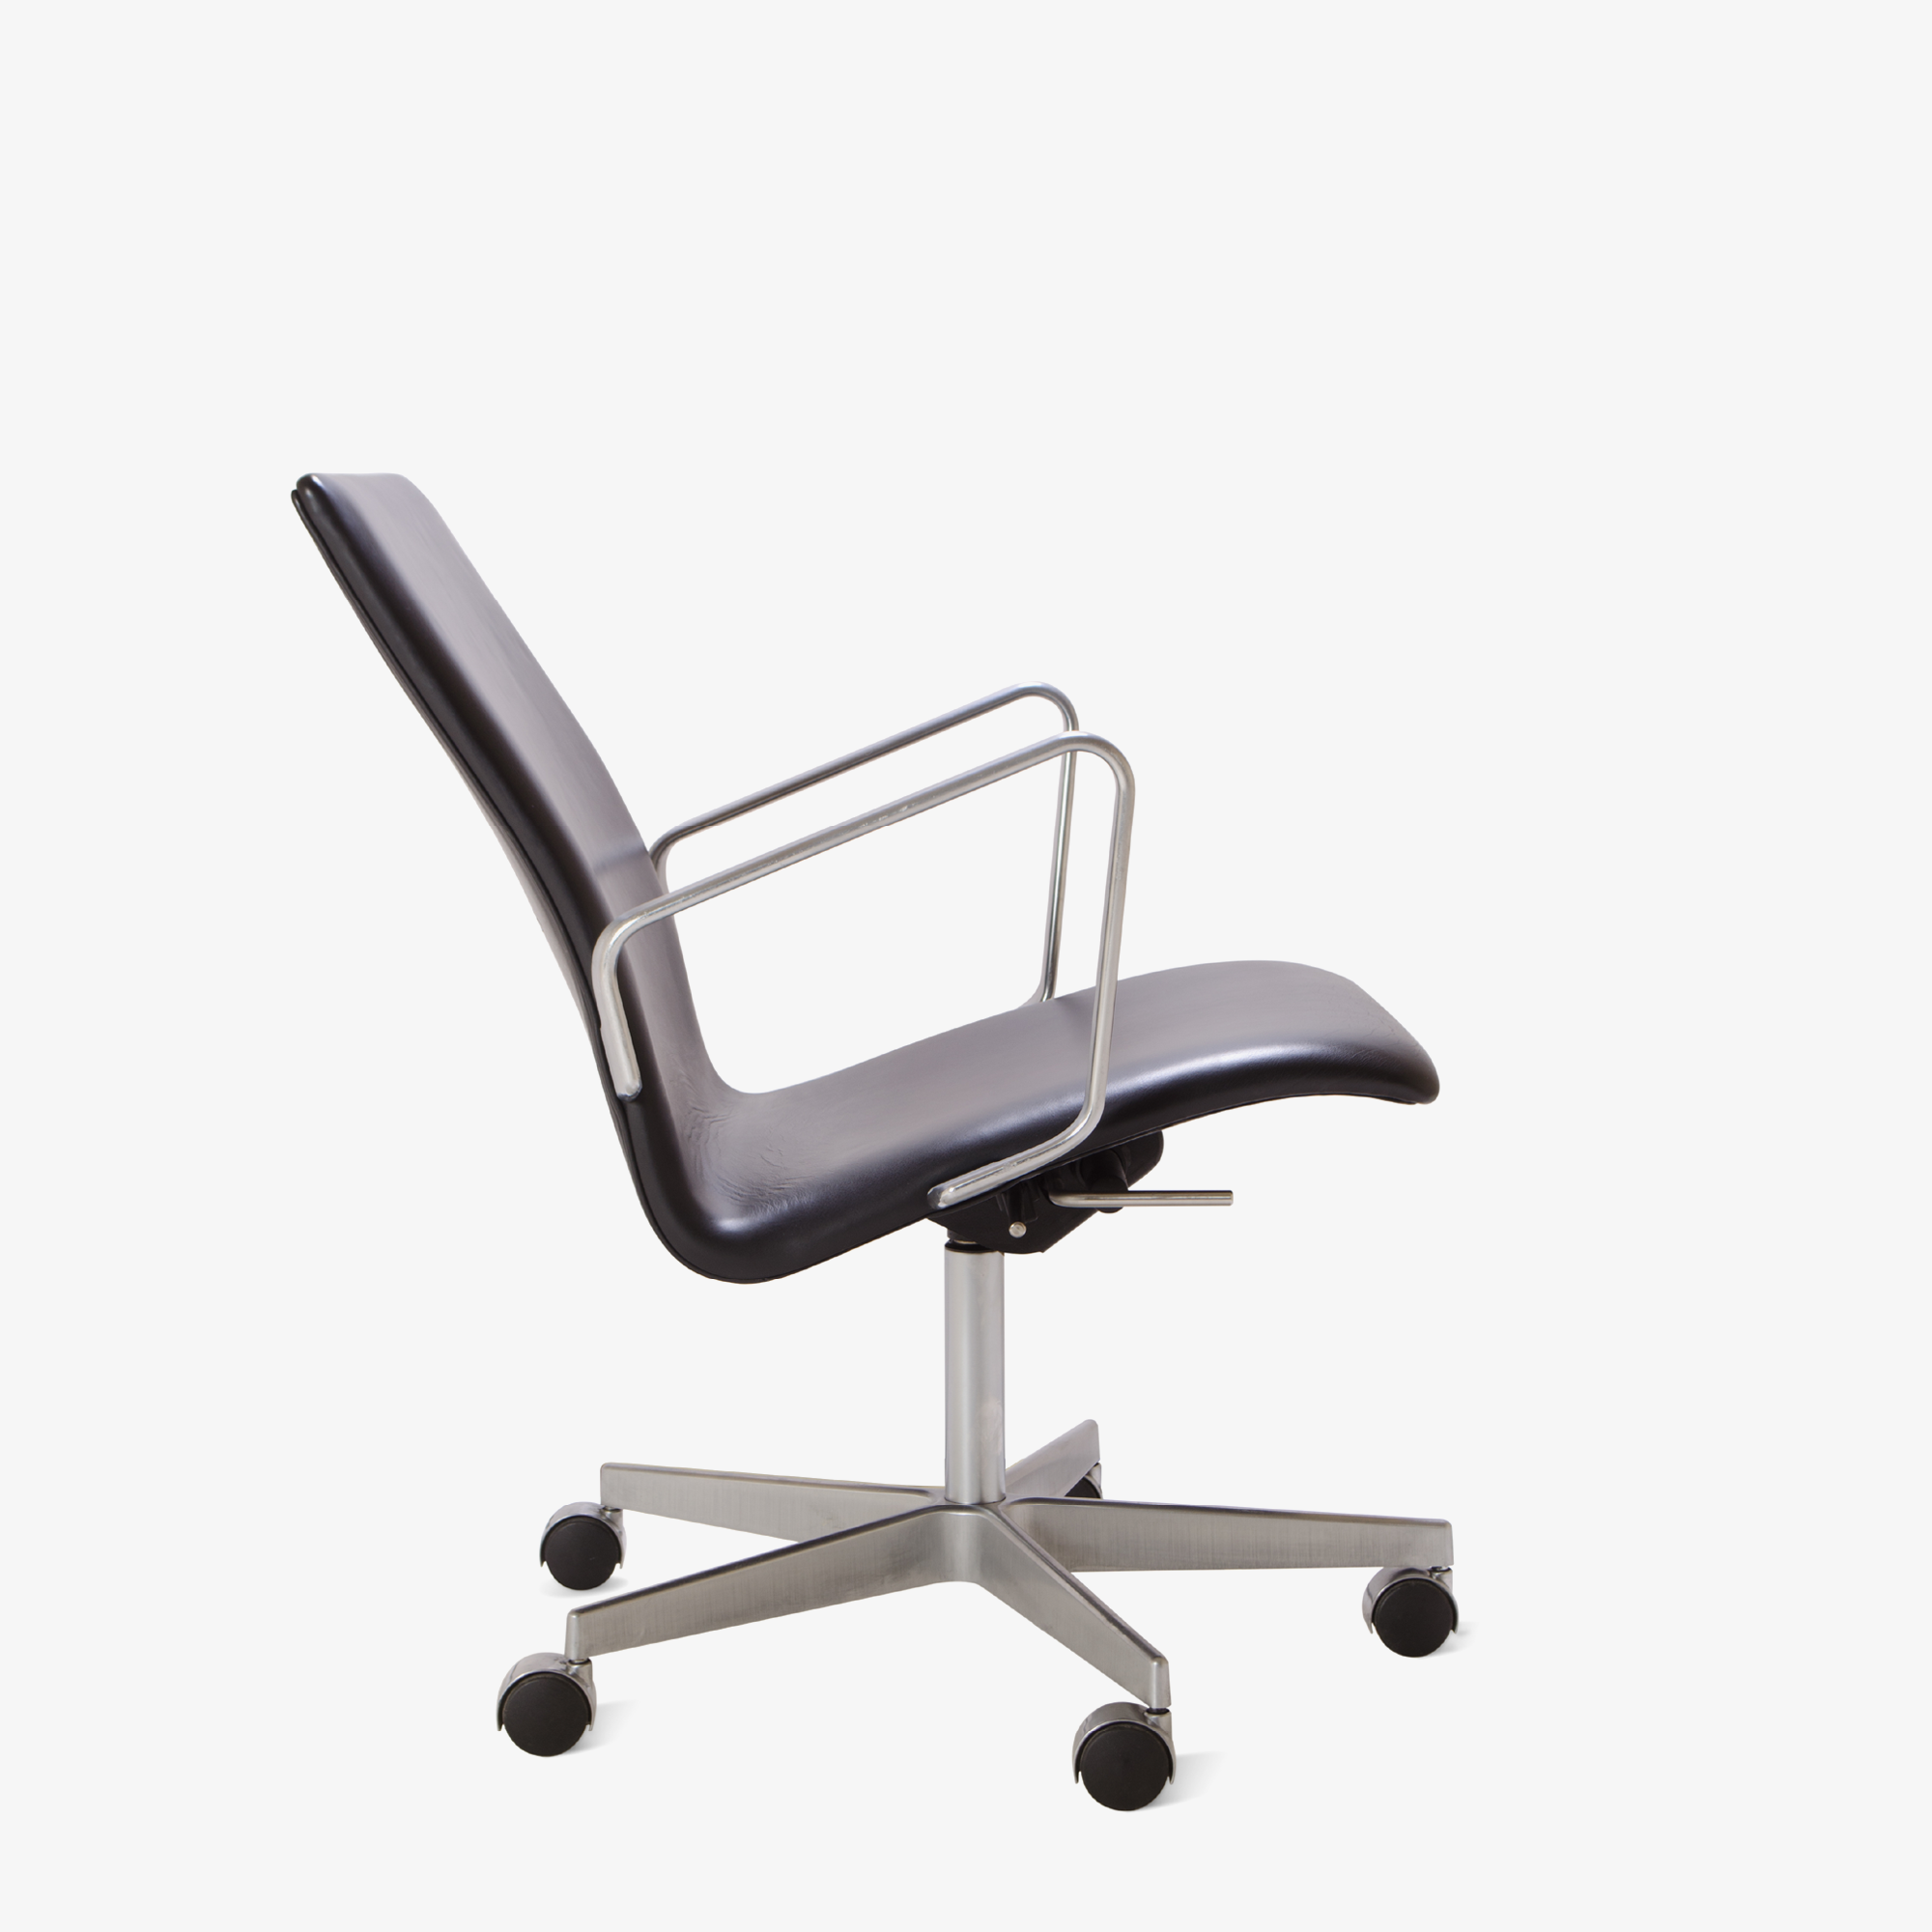 Oxford Chair by Arne Jacobsen for Fritz Hansen4.png